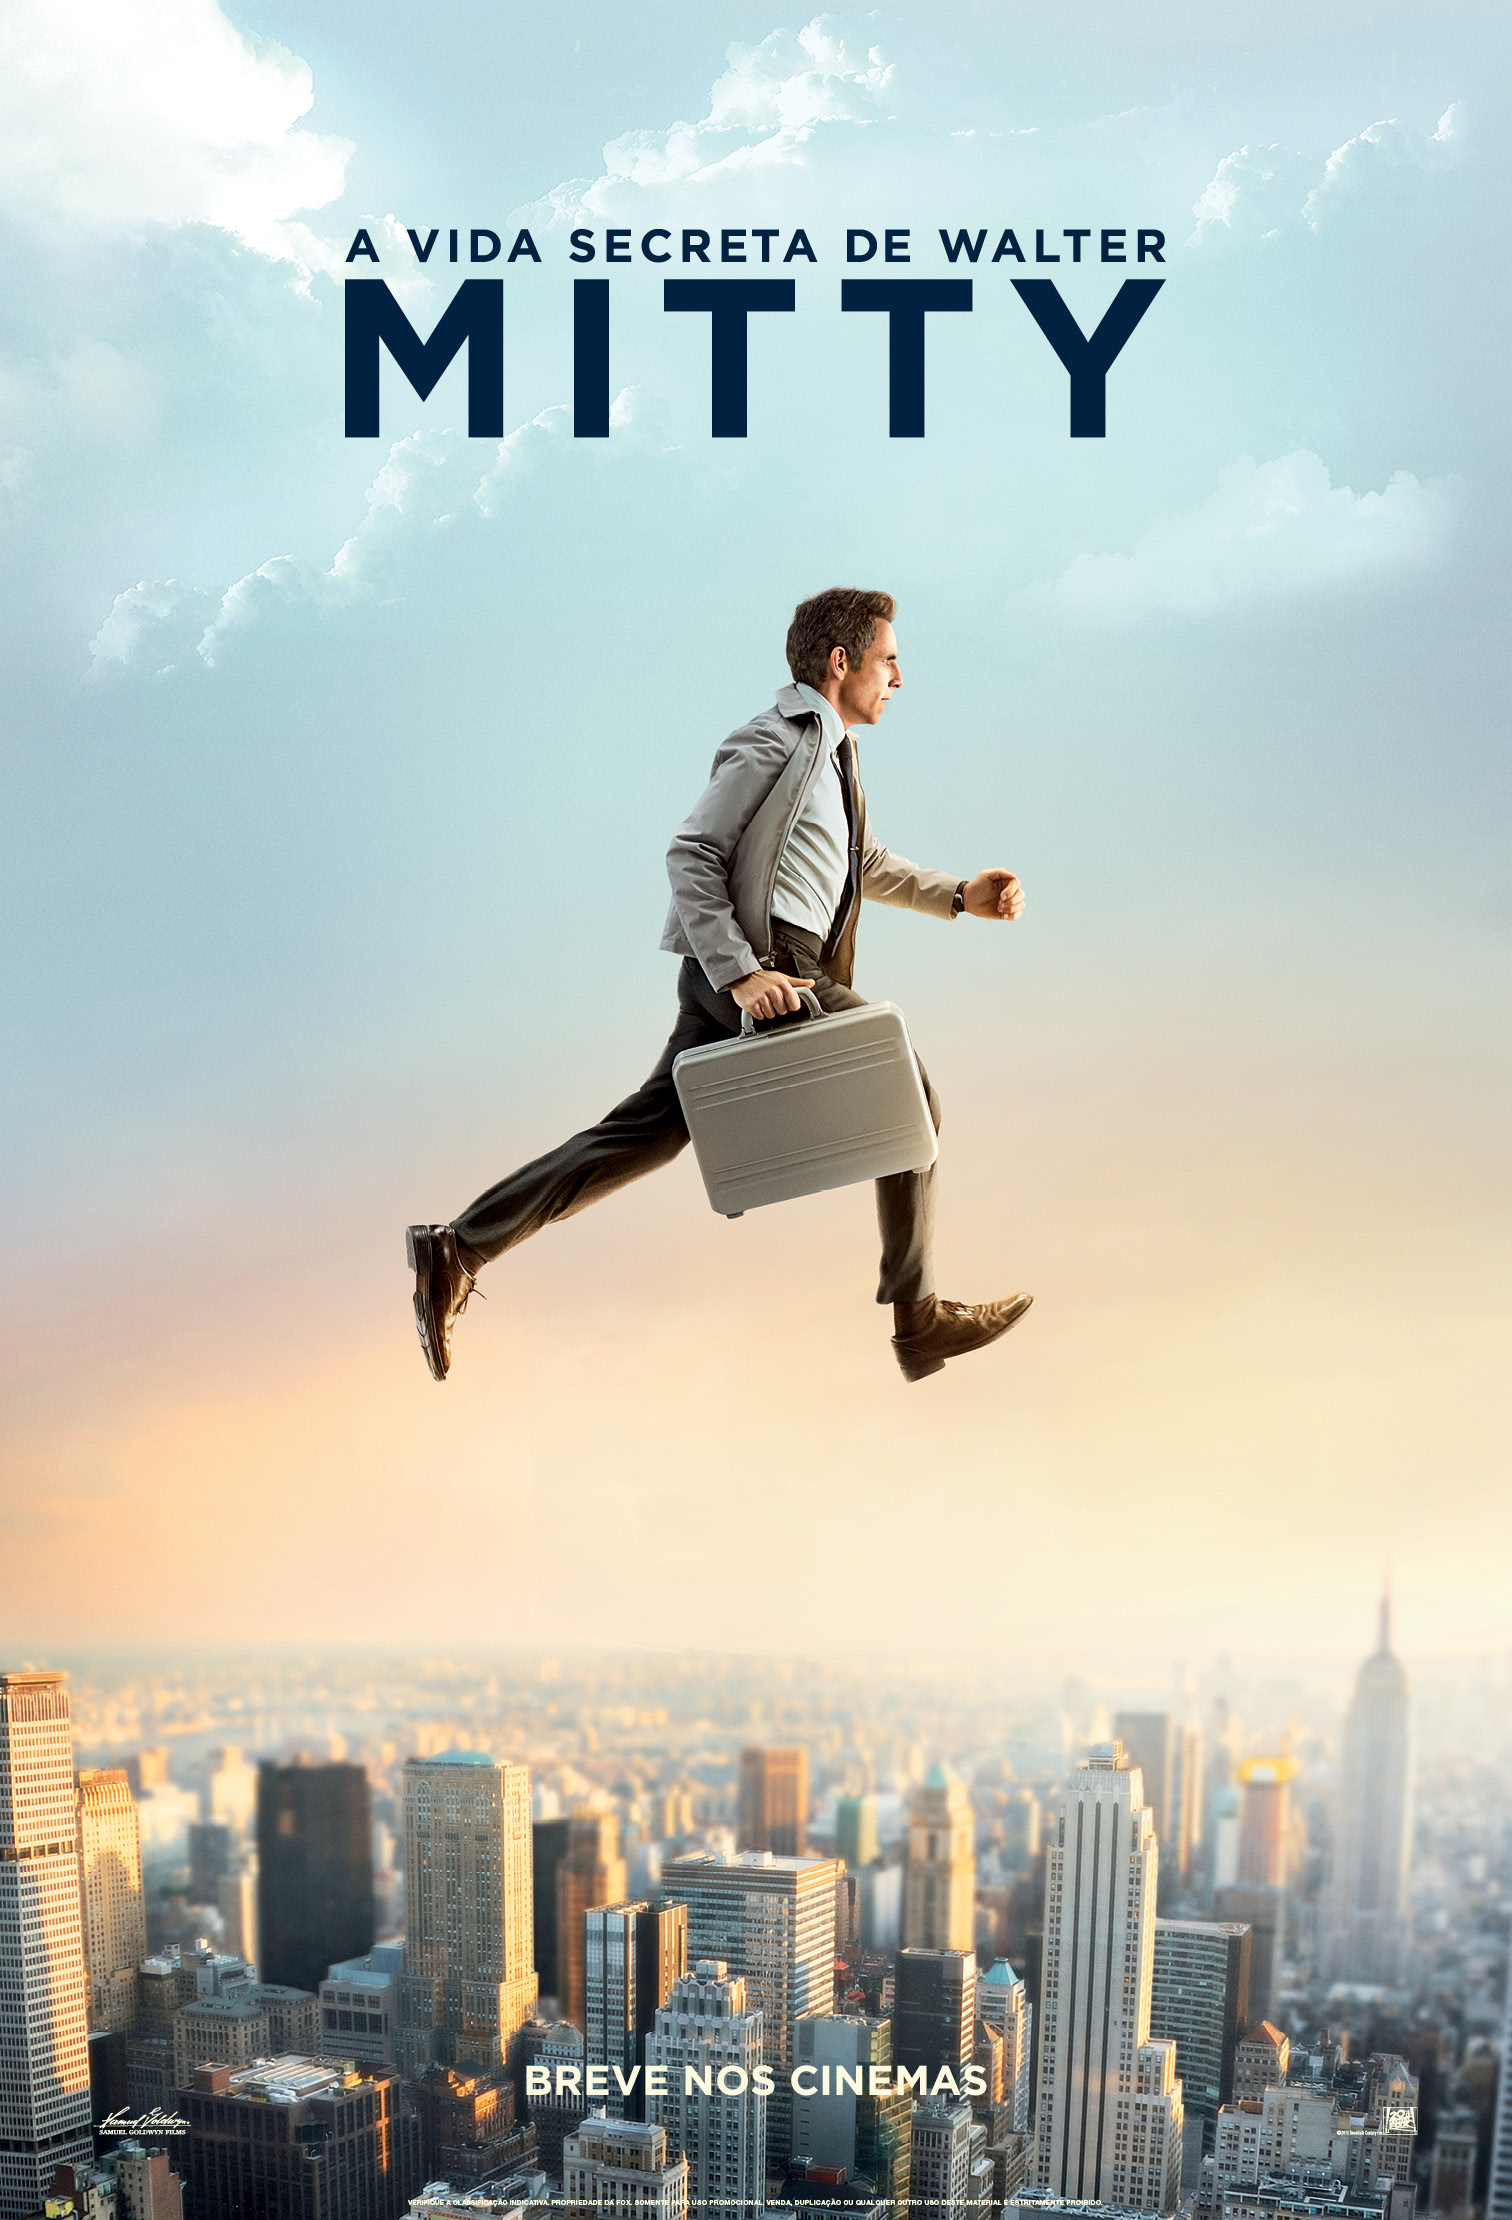 The Secret Life of Walter Mitty-Official Poster Banner PROMO NACIONAL XXLG-18NOVEMBRO2013